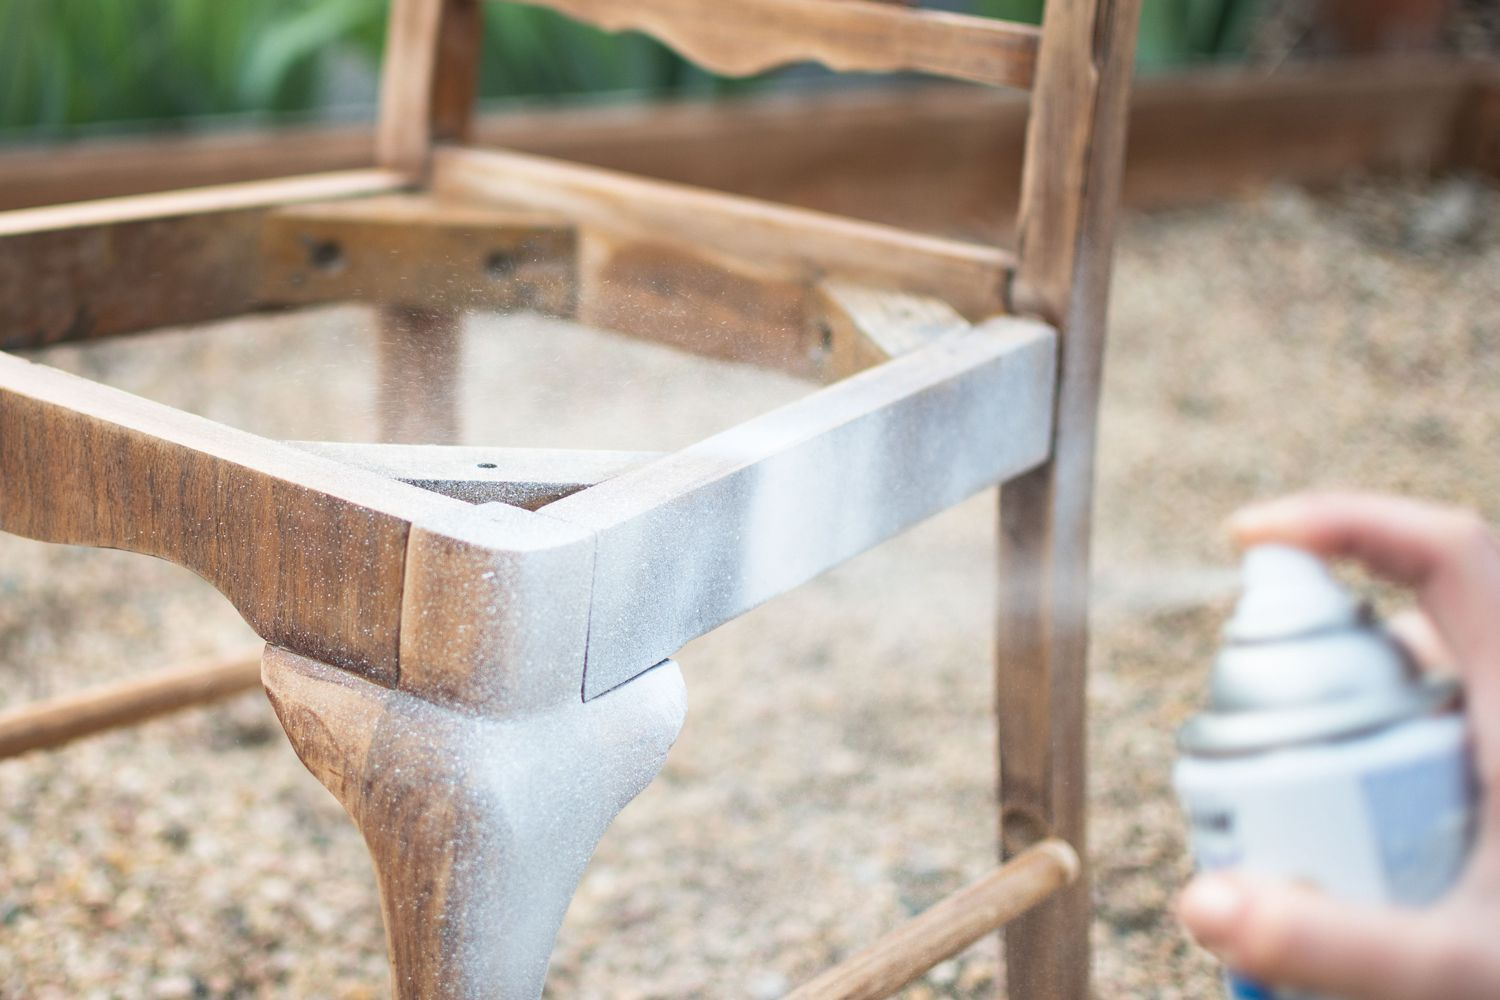 White primer sprayed on wooden chair with spray can